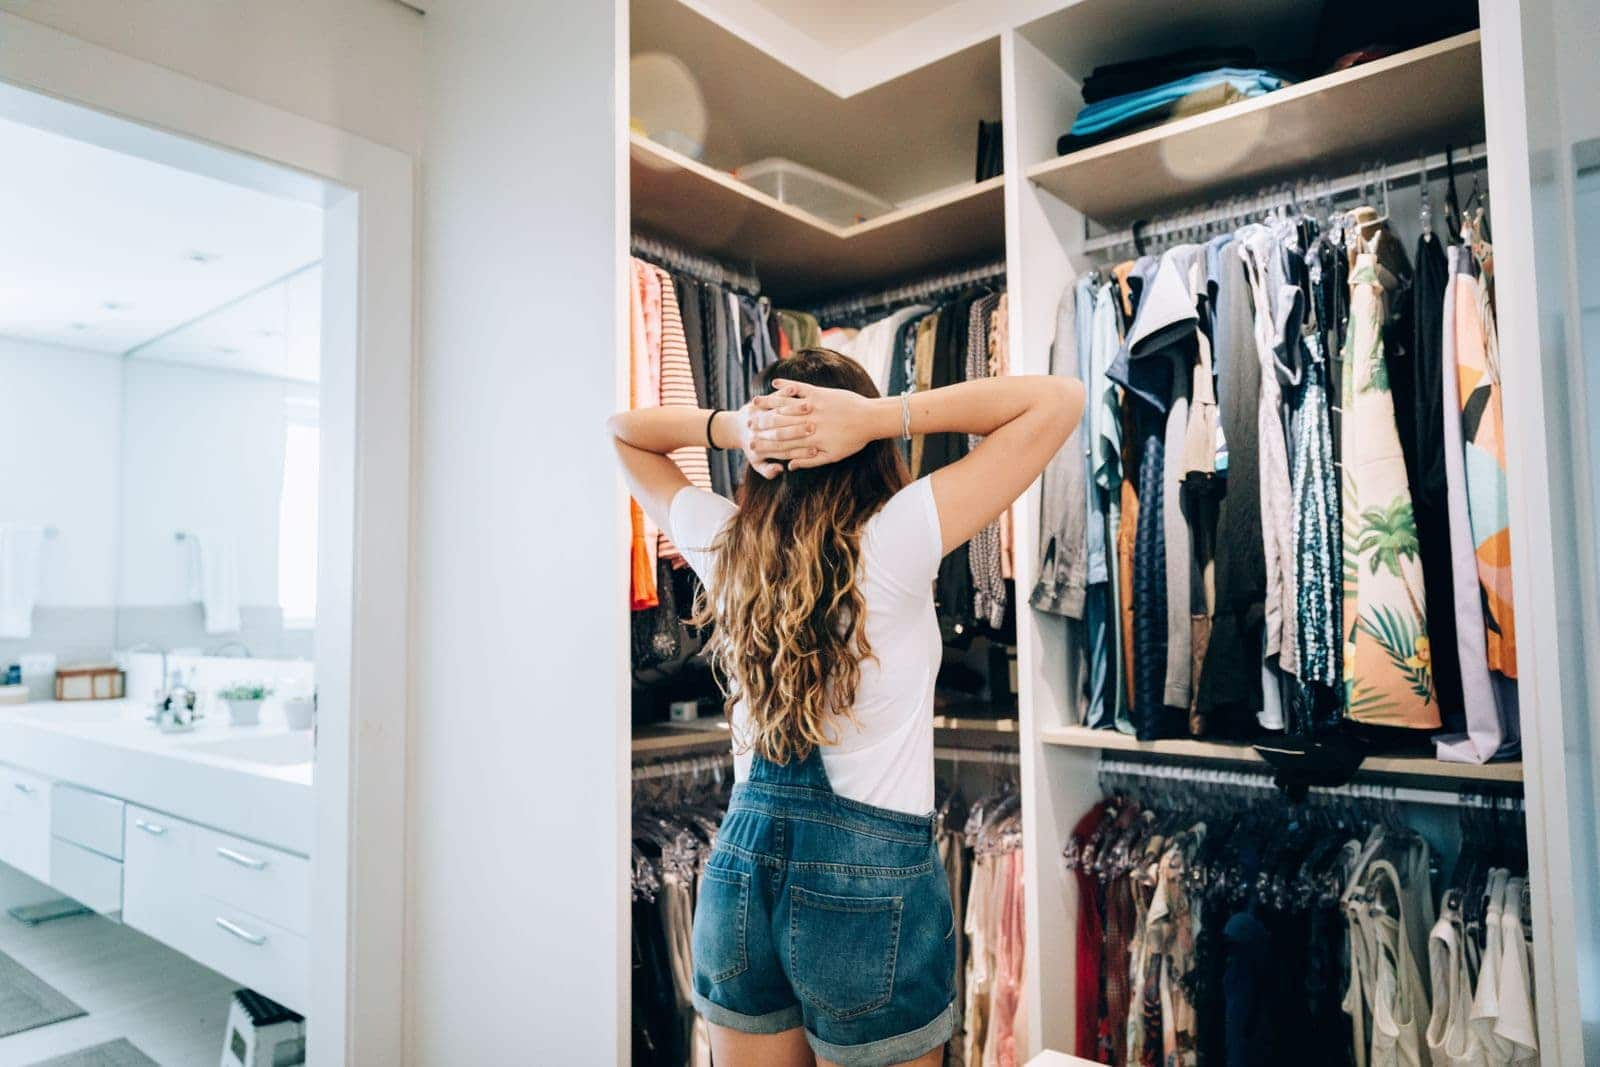 Young girl looking for something to wear